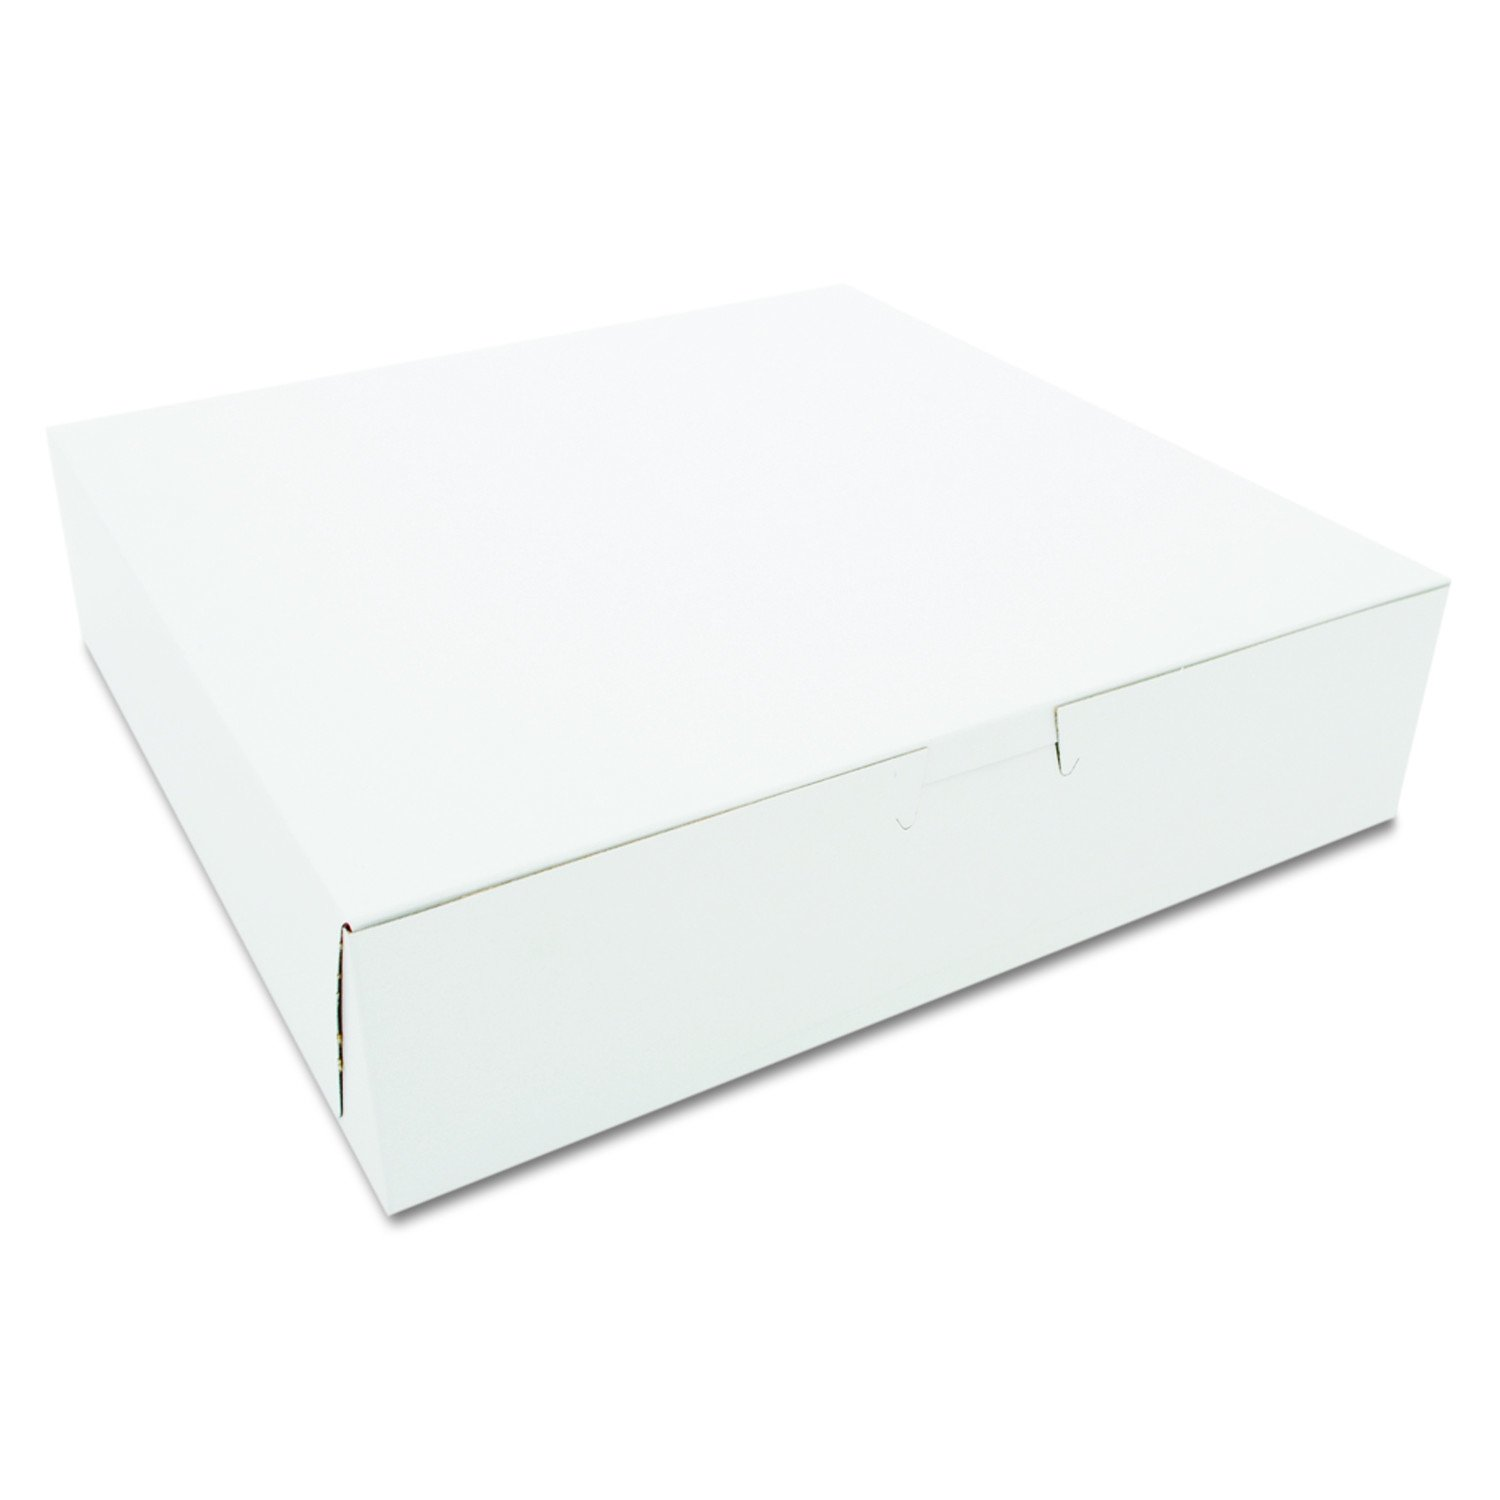 Southern Champion Tray 0969 Premium Clay Coated Kraft Paperboard White Non-Window Lock Corner Bakery Box, 10'' Length x 10'' Width x 2-1/2'' Height (Case of 250)